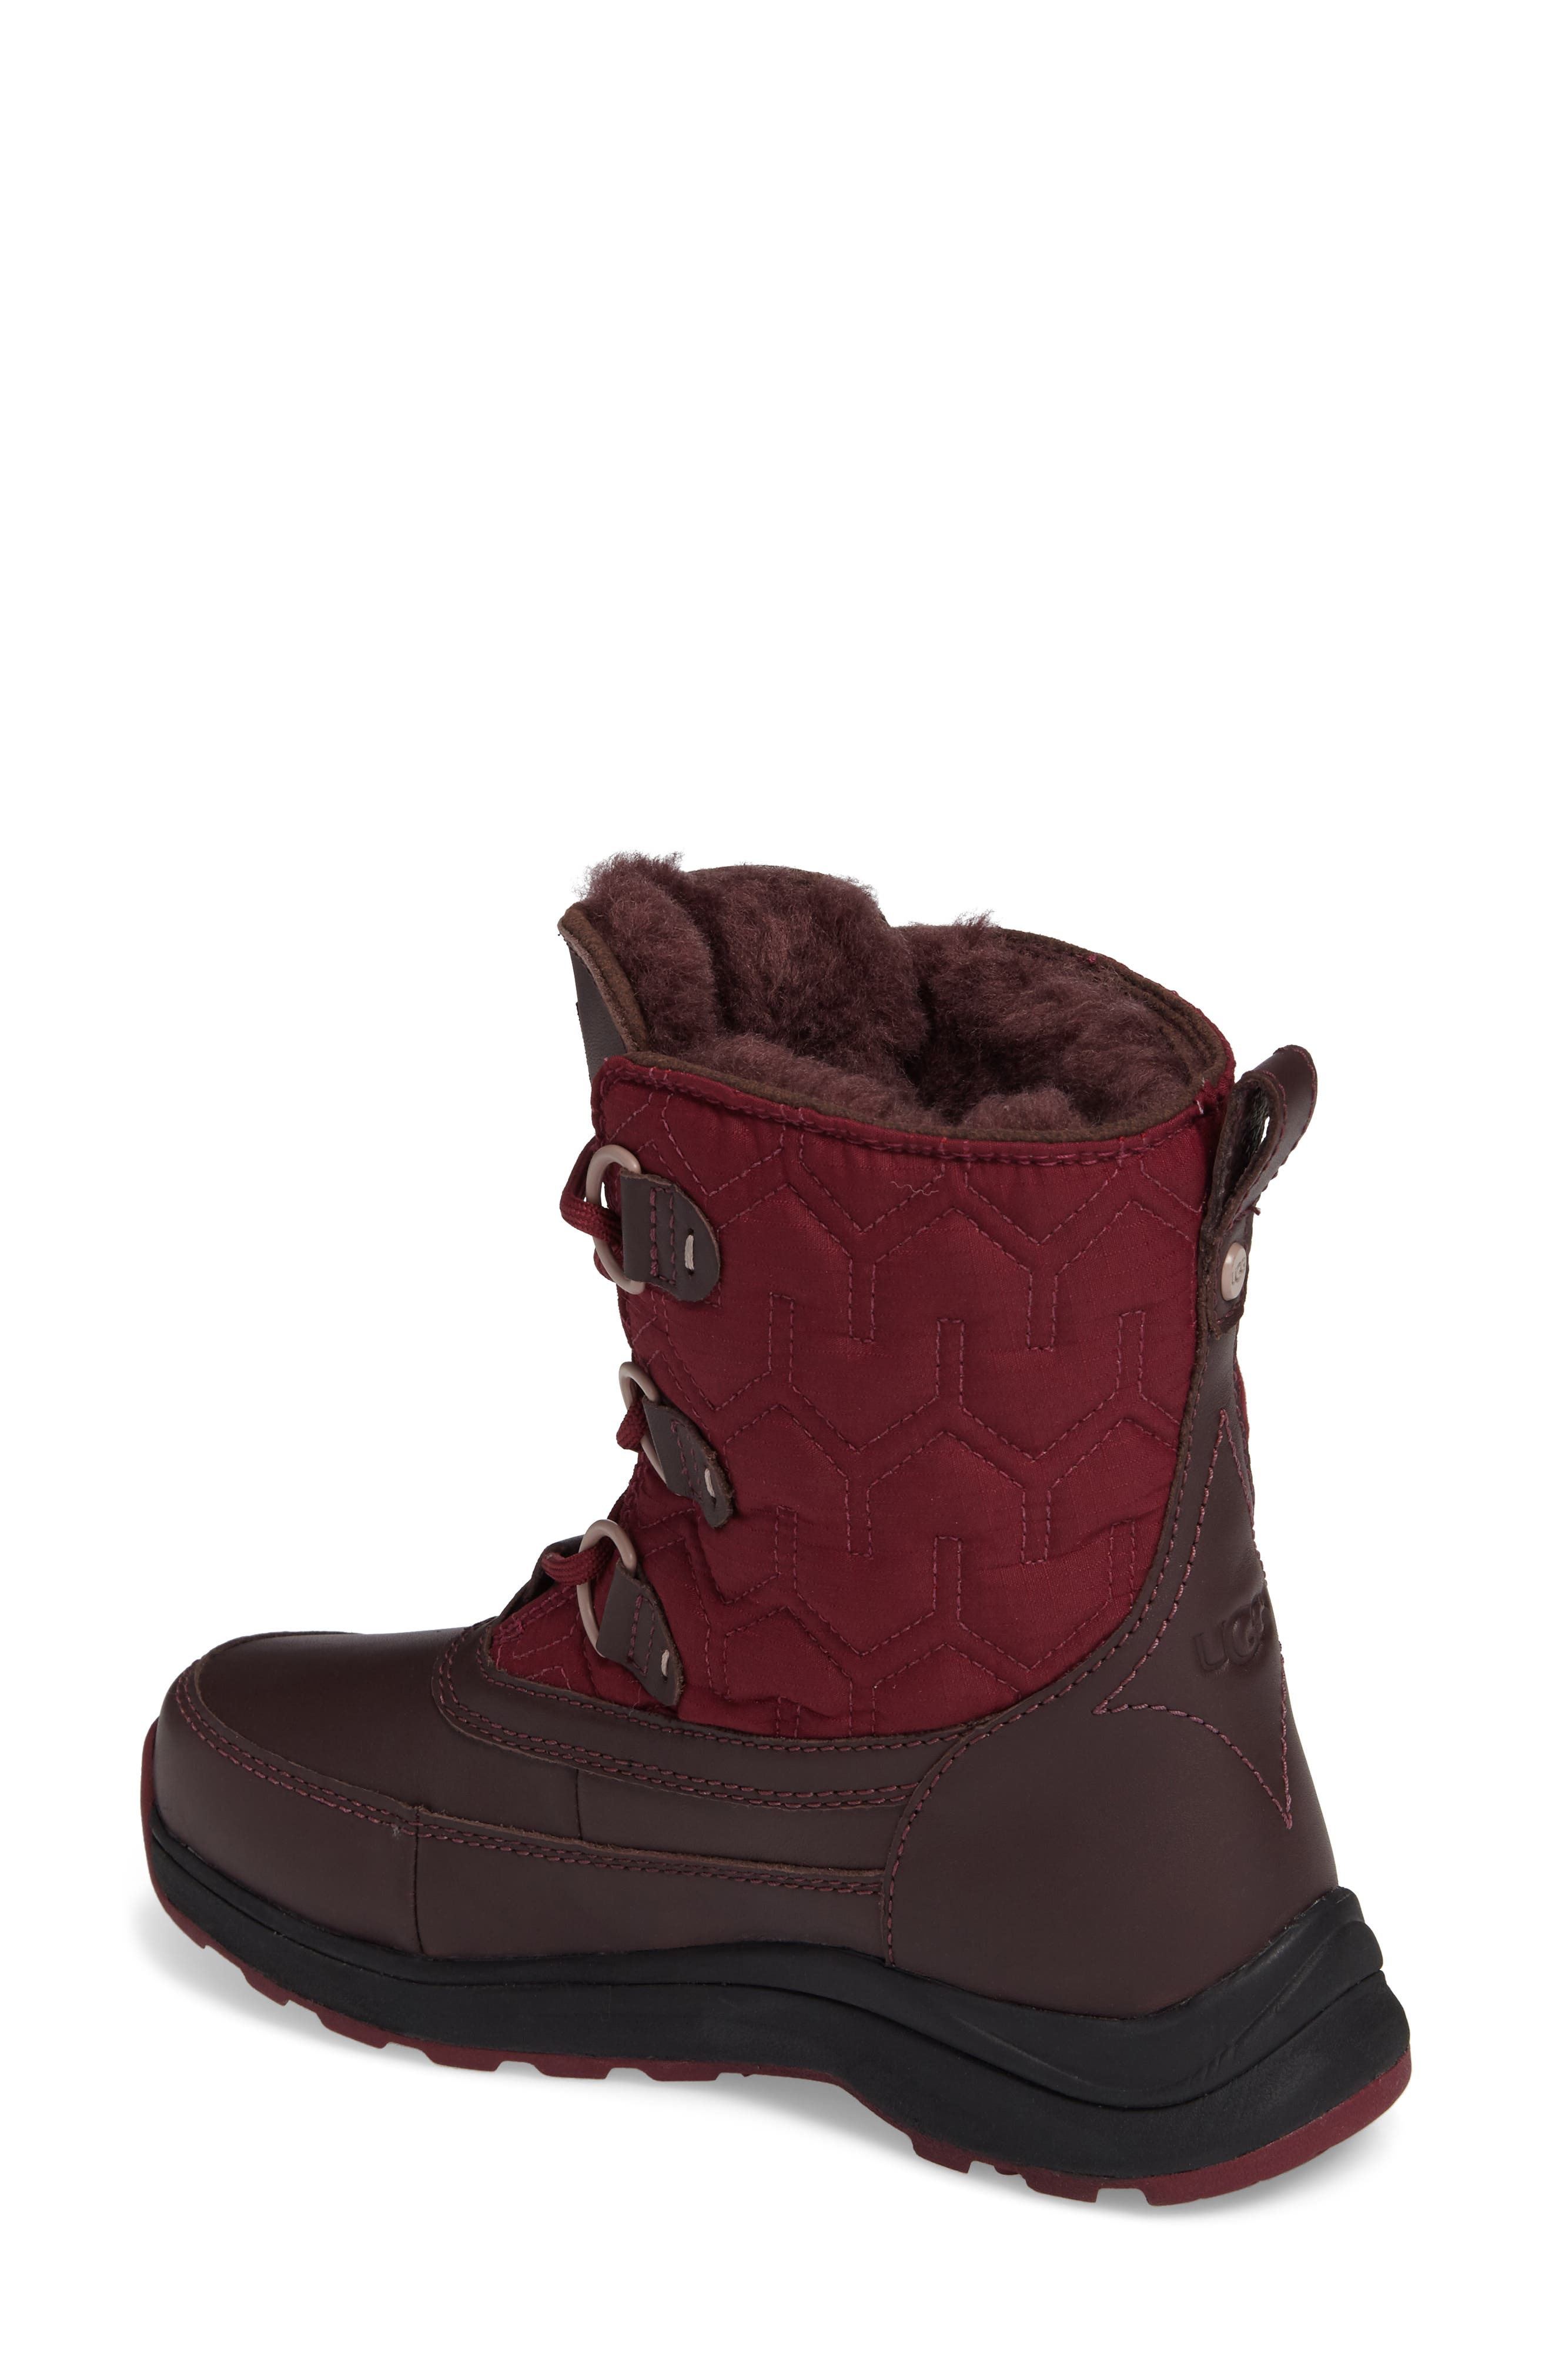 Lachlan Waterproof Insulated Snow Boot,                             Alternate thumbnail 6, color,